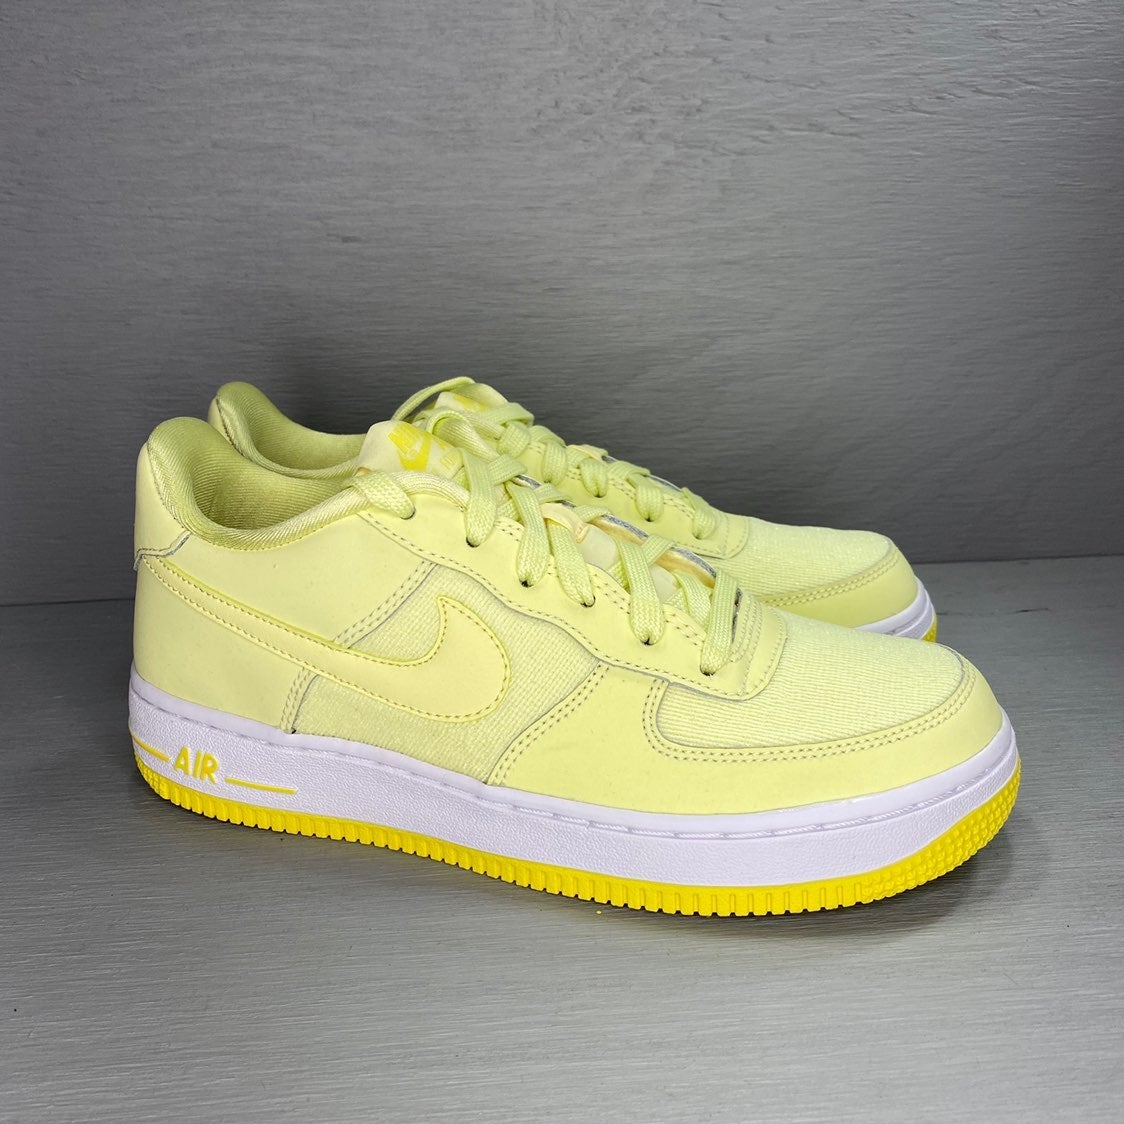 Nike Air Force 1 '07 LV8 (GS) Lifestyle